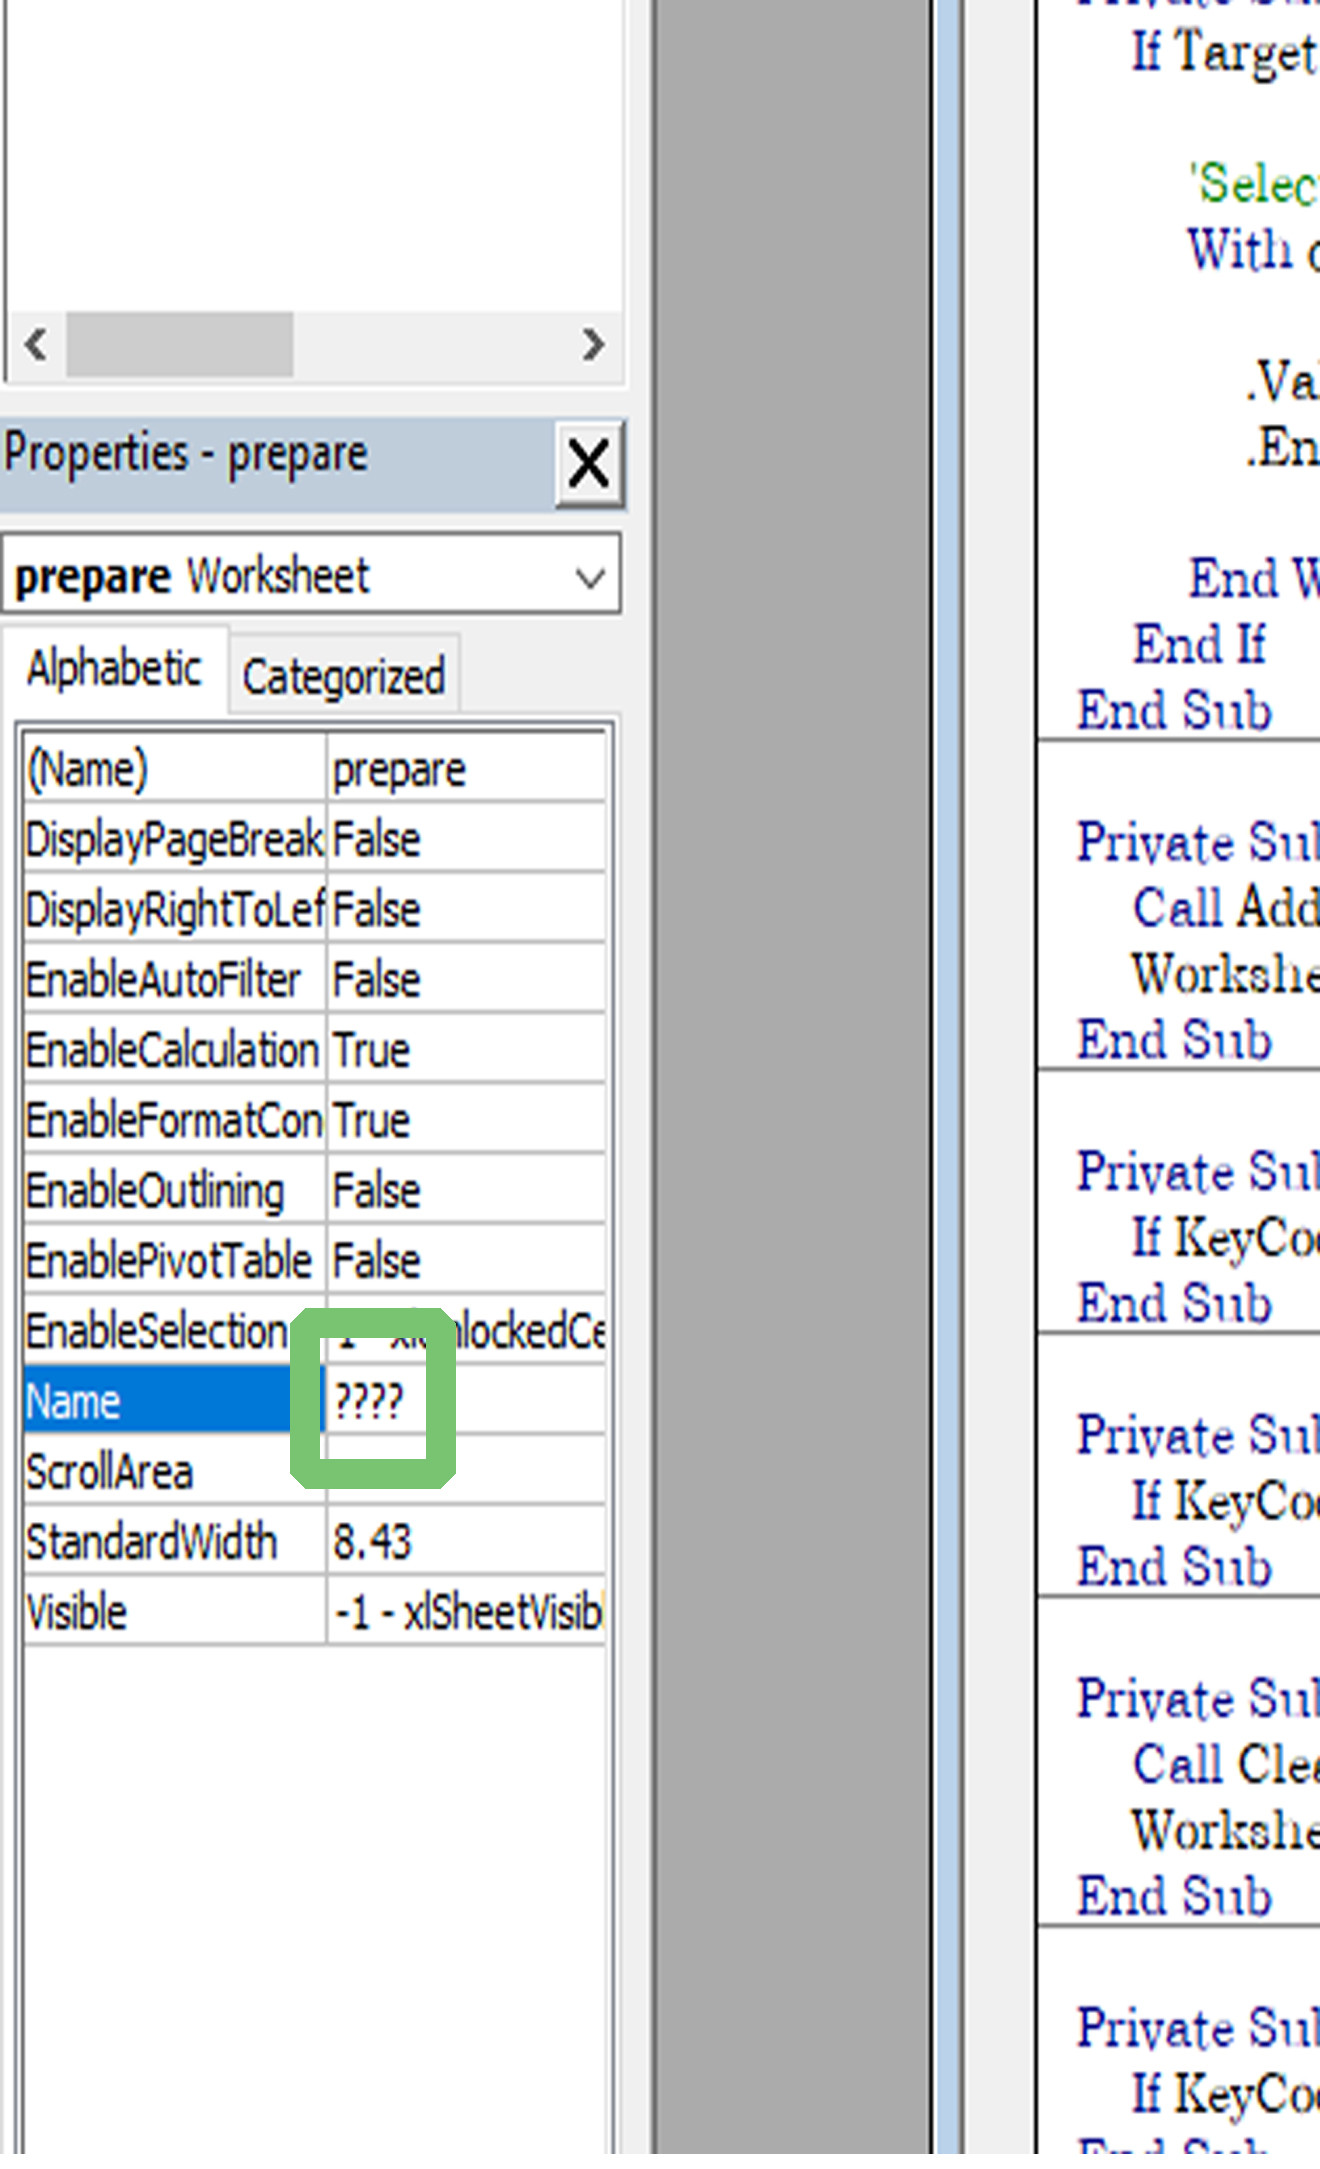 How Do I Input Chinese Text Into Vba Editor In Excel